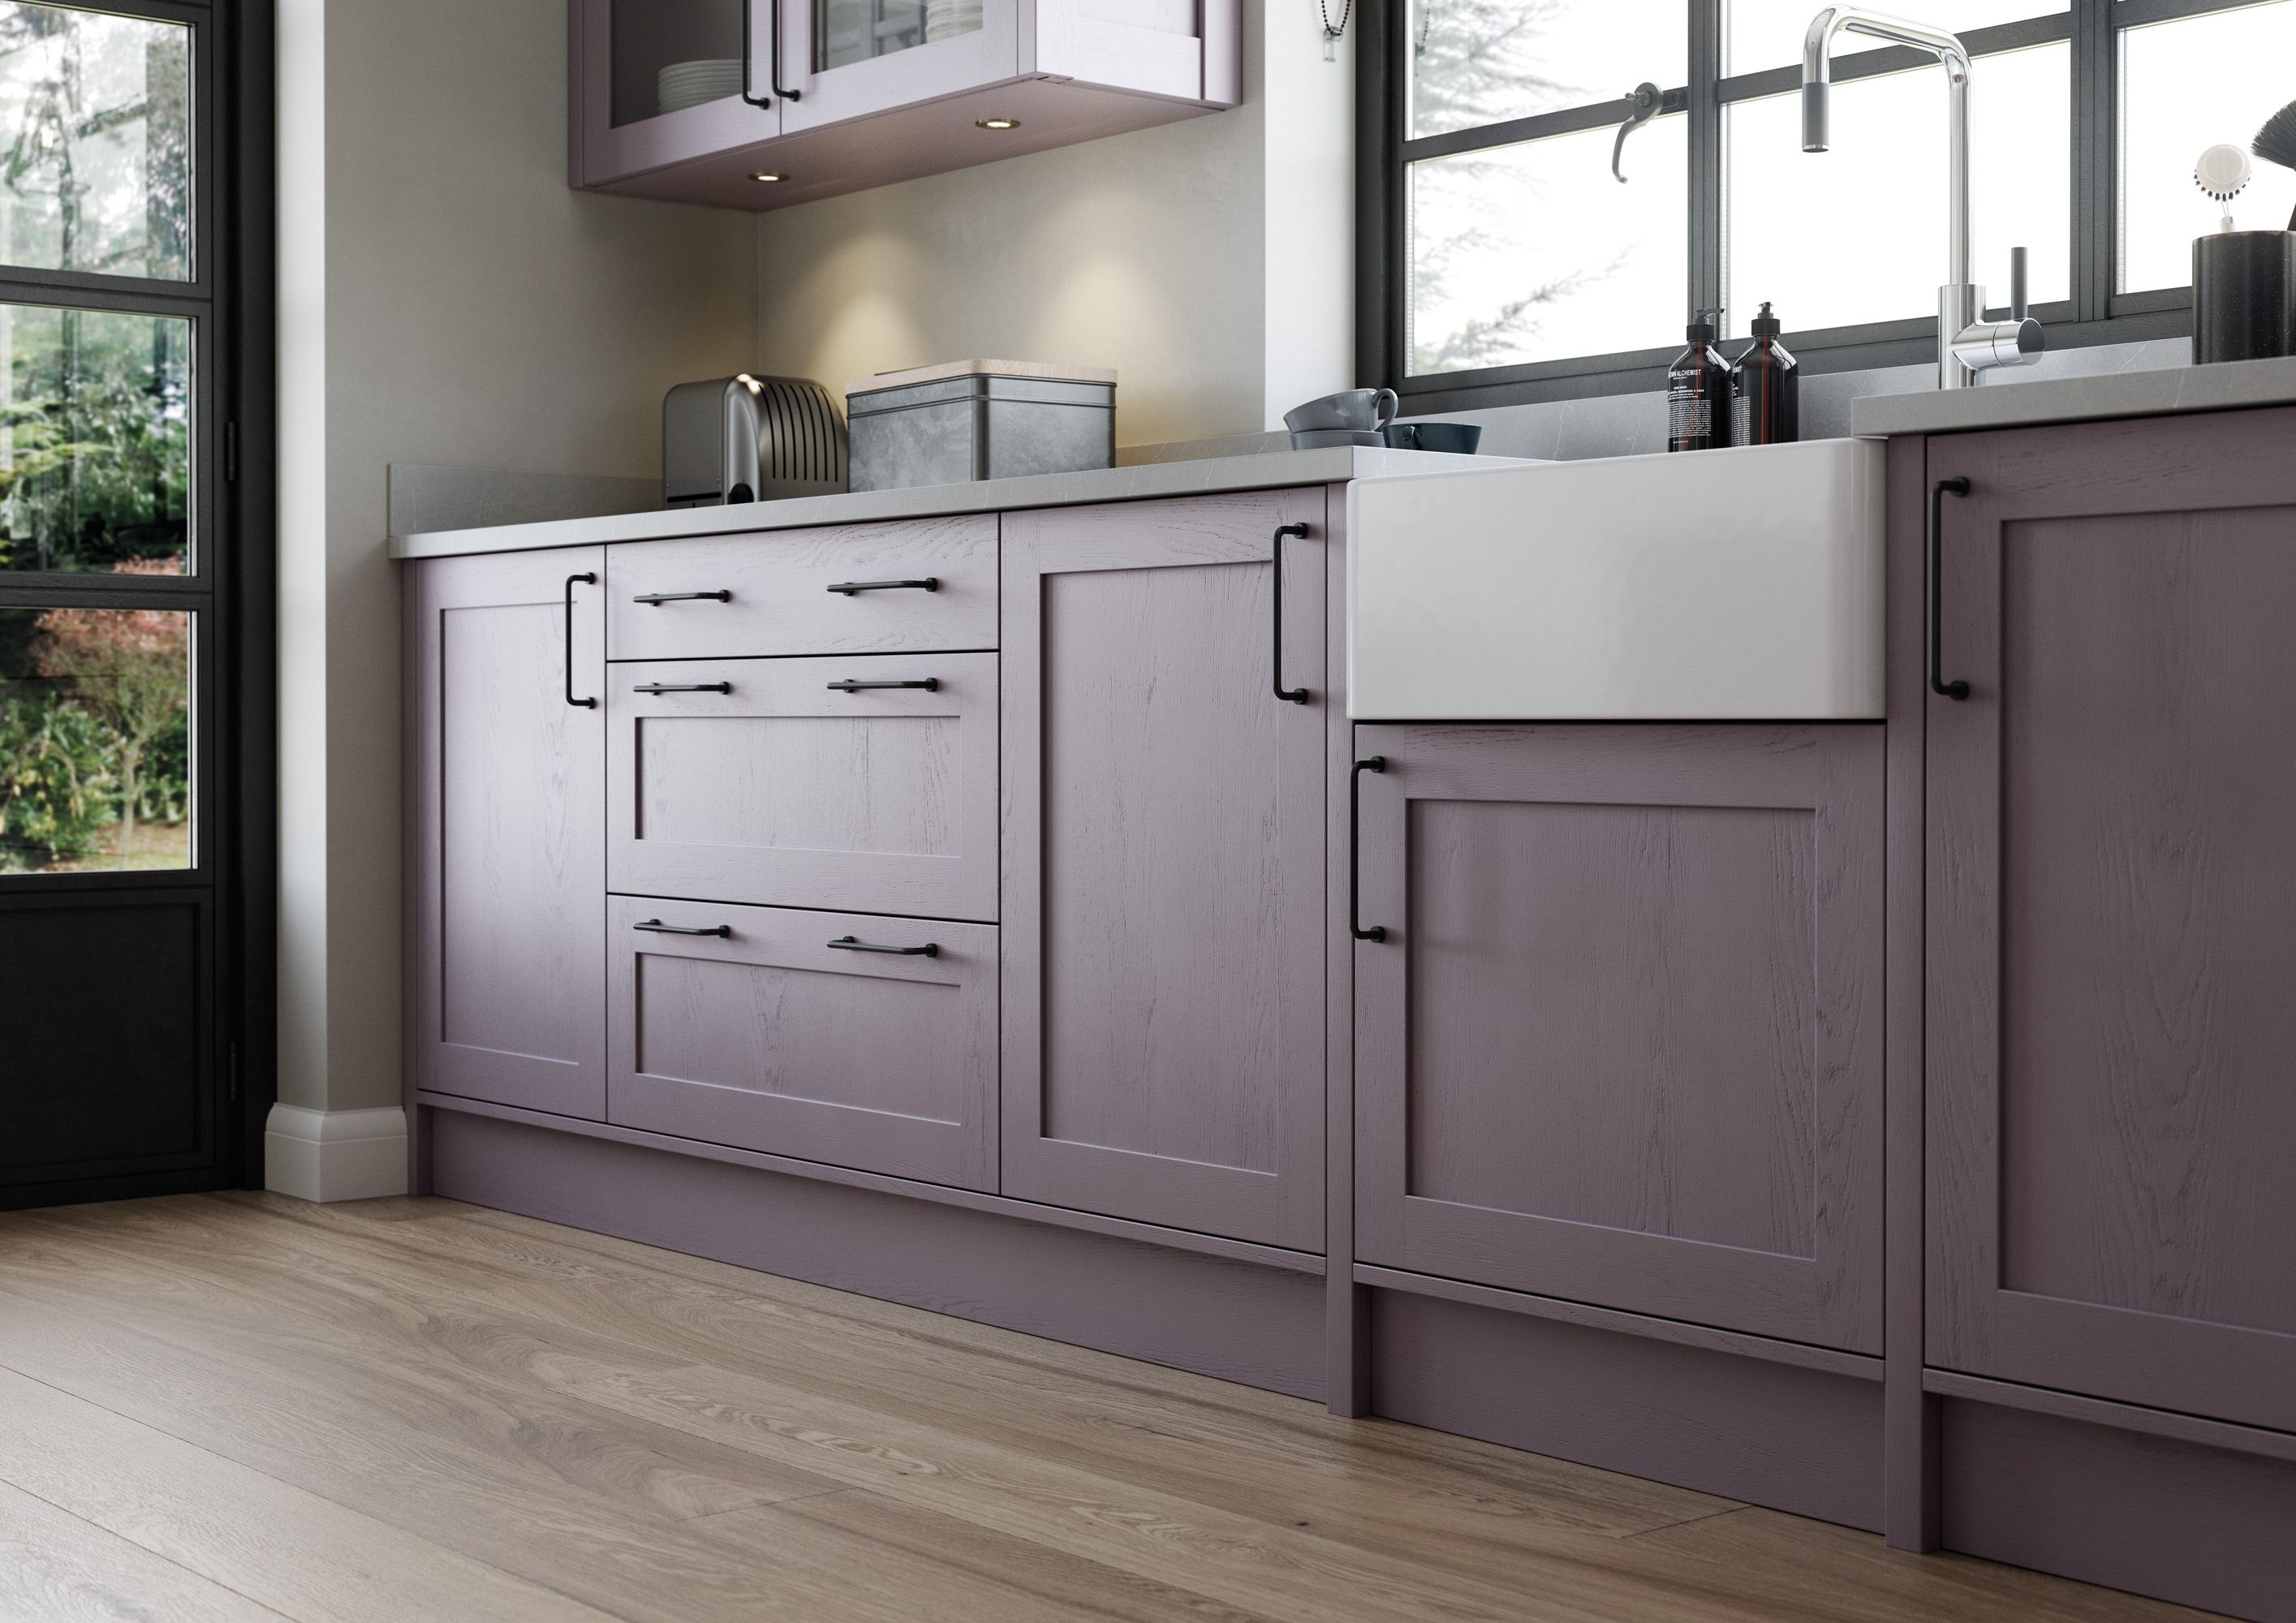 I Replace My Kitchen Doors And Drawers, Cost Of Replacing Kitchen Cabinet Doors And Drawers Uk